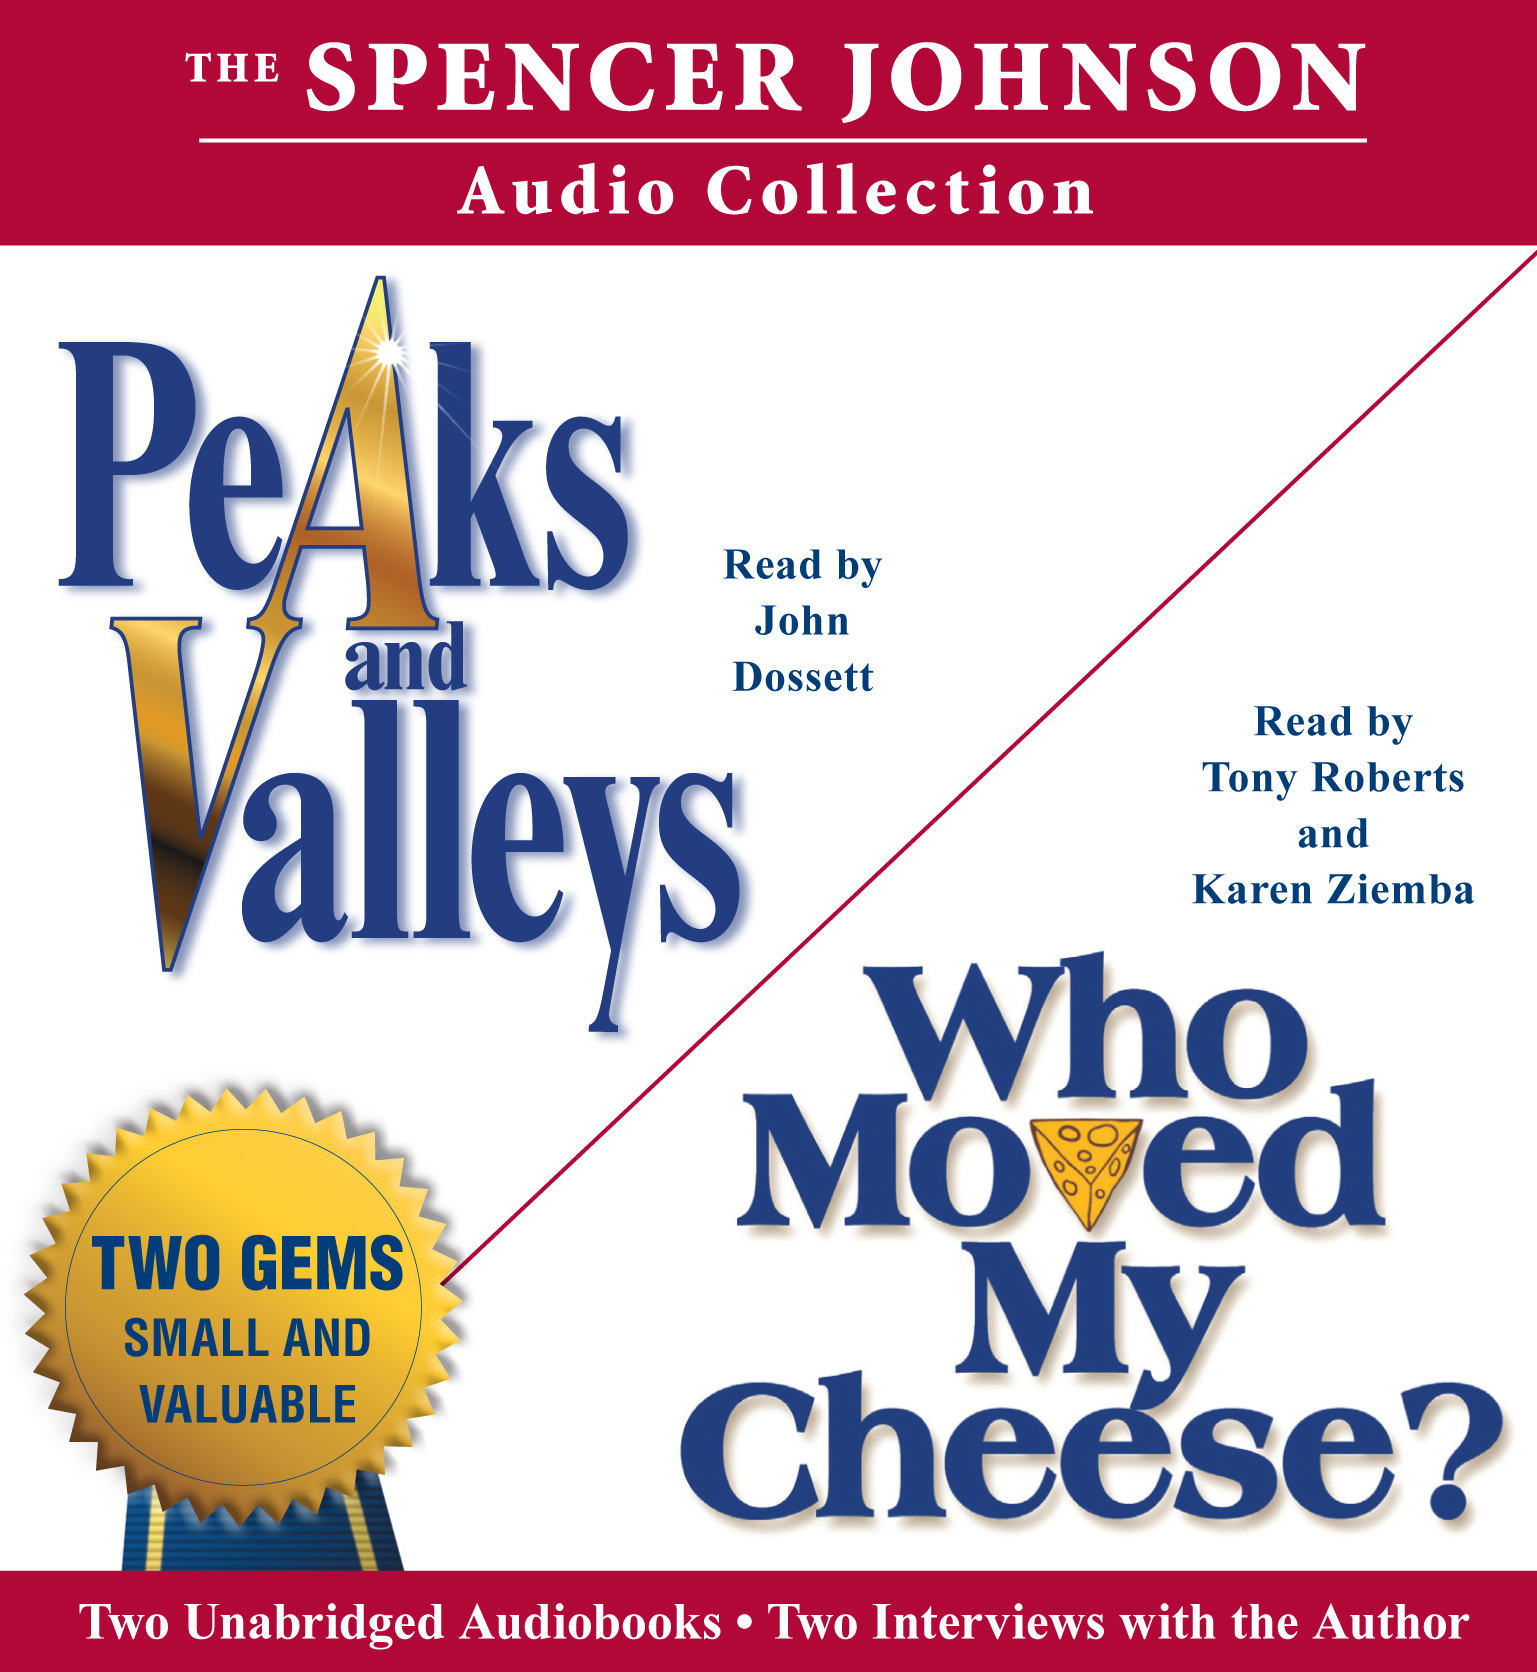 Who Moved My Cheese Quotes New The Spencer Johnson Audio Collection Audiobook On Cdspencer